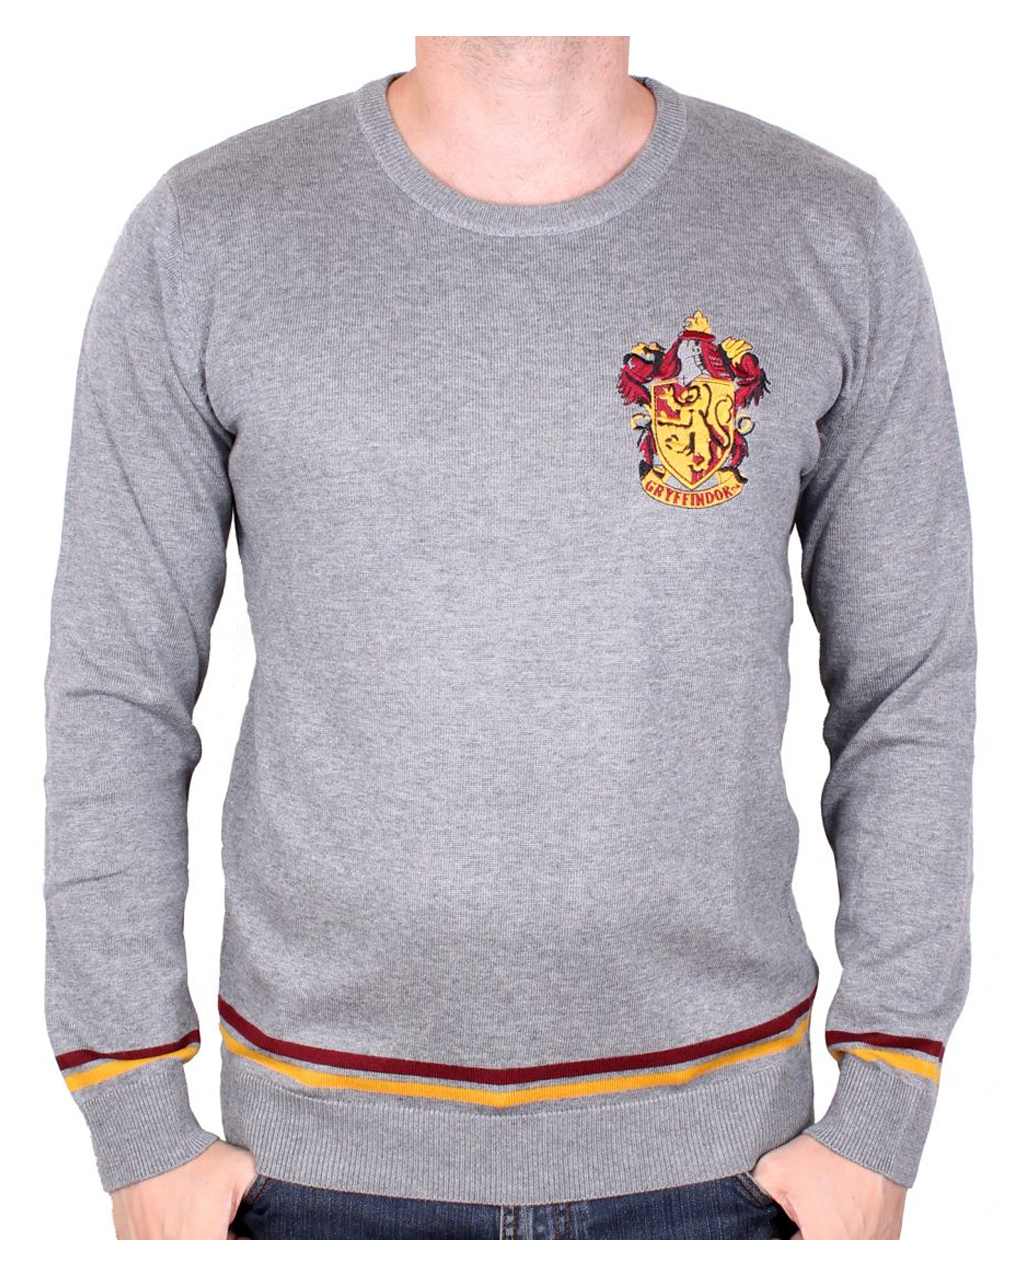 detailed look 7b0f5 02459 Harry Potter Gryffindor Pullover grau